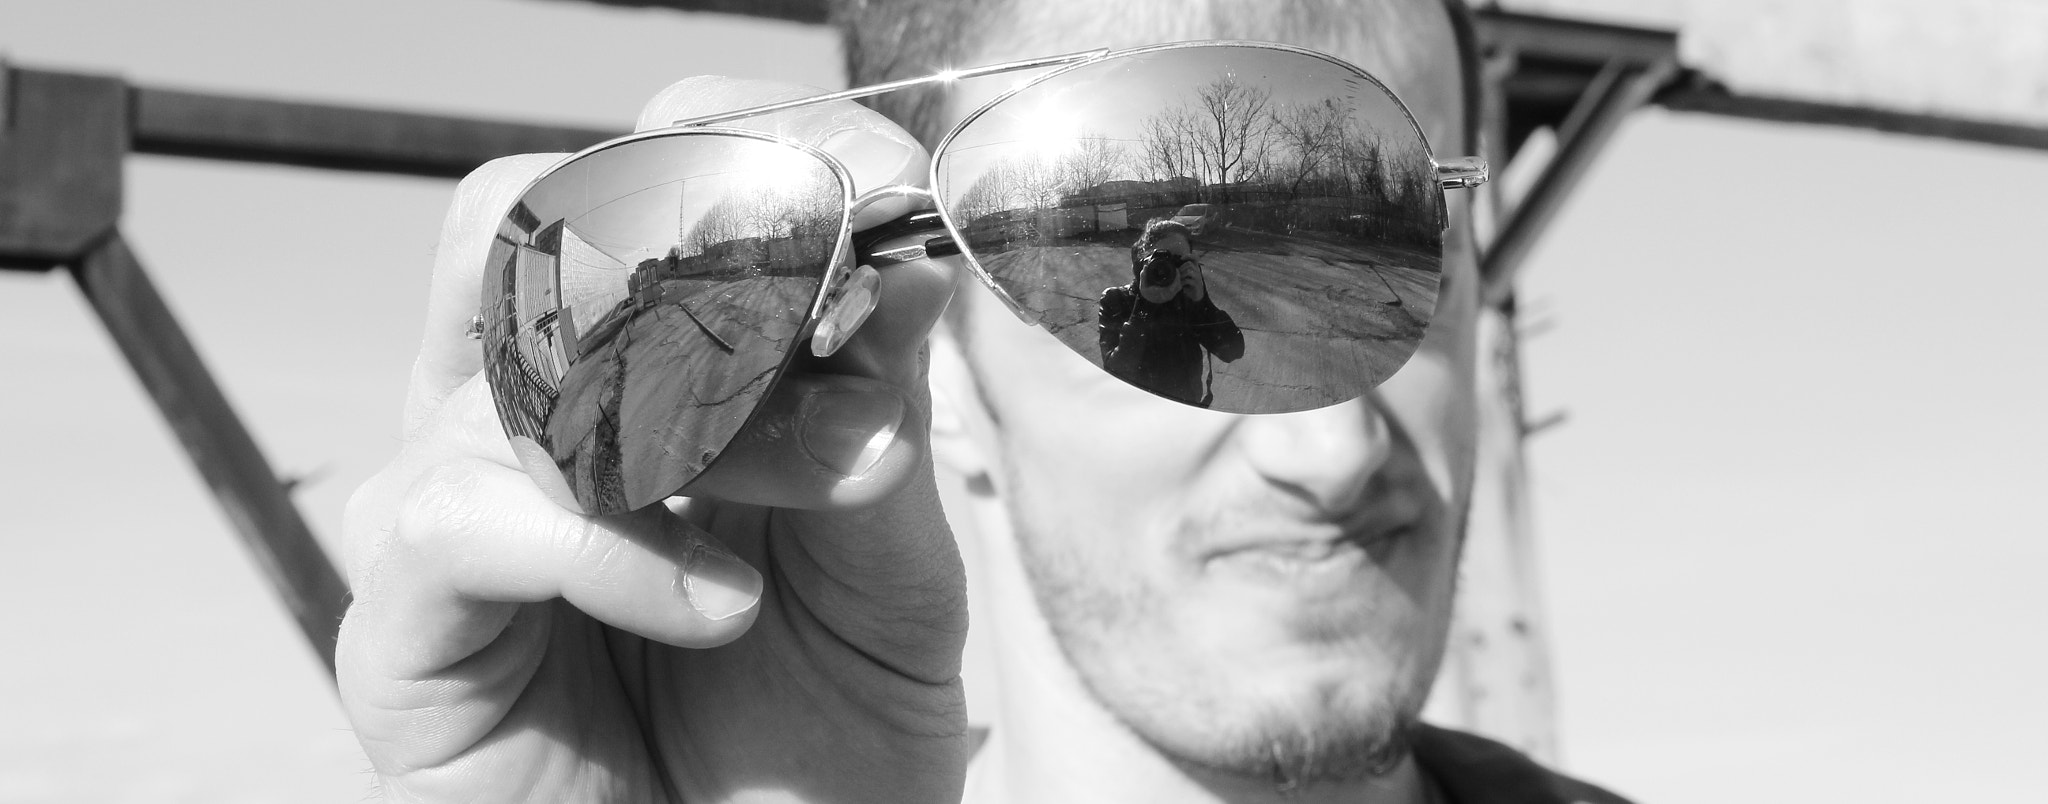 Photograph Behind the Glasses by Mihai Adam on 500px